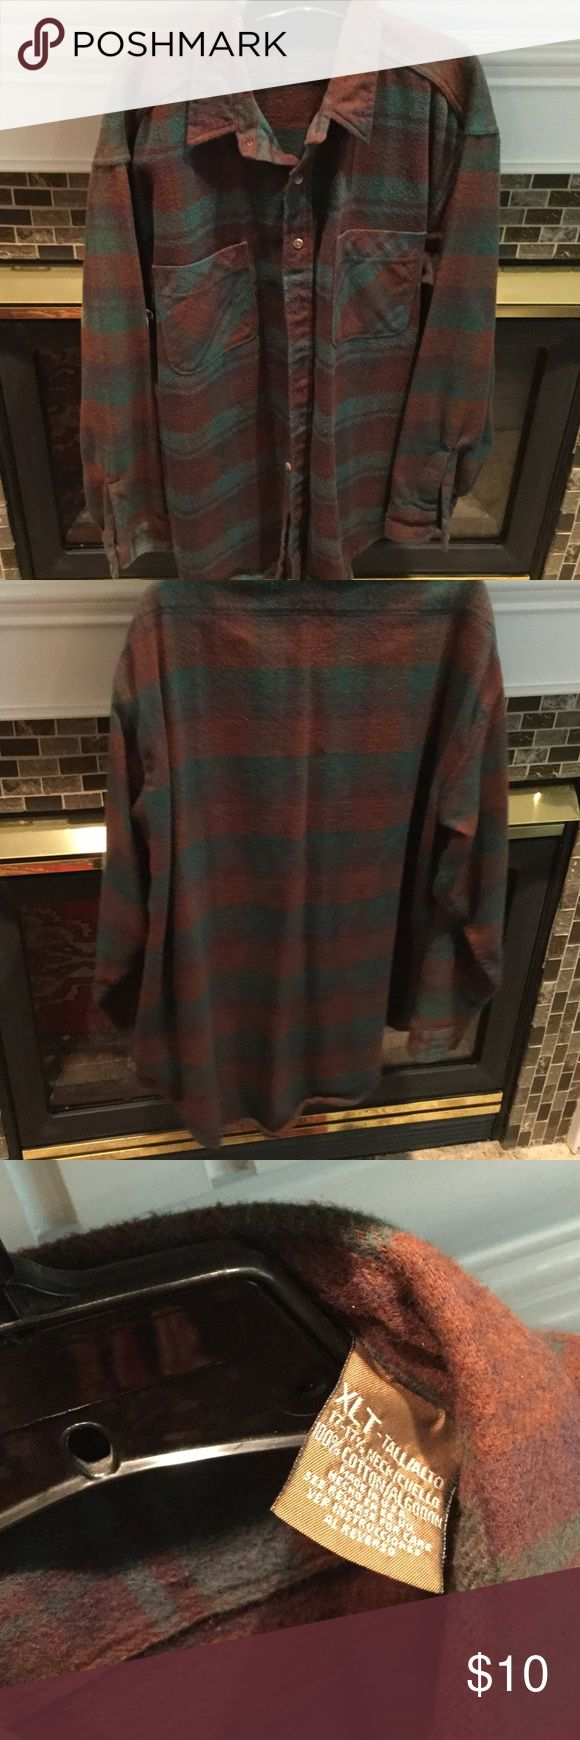 XL Tall Brown & Green Flannel Shirt-Great Cond. Men's XL Tall Brown & Green Flannel Shirt-I'm not sure of the brand-Could be worn as a shirt or as a shirt jacket-Great Condition-from a smoke free home Shirts Casual Button Down Shirts